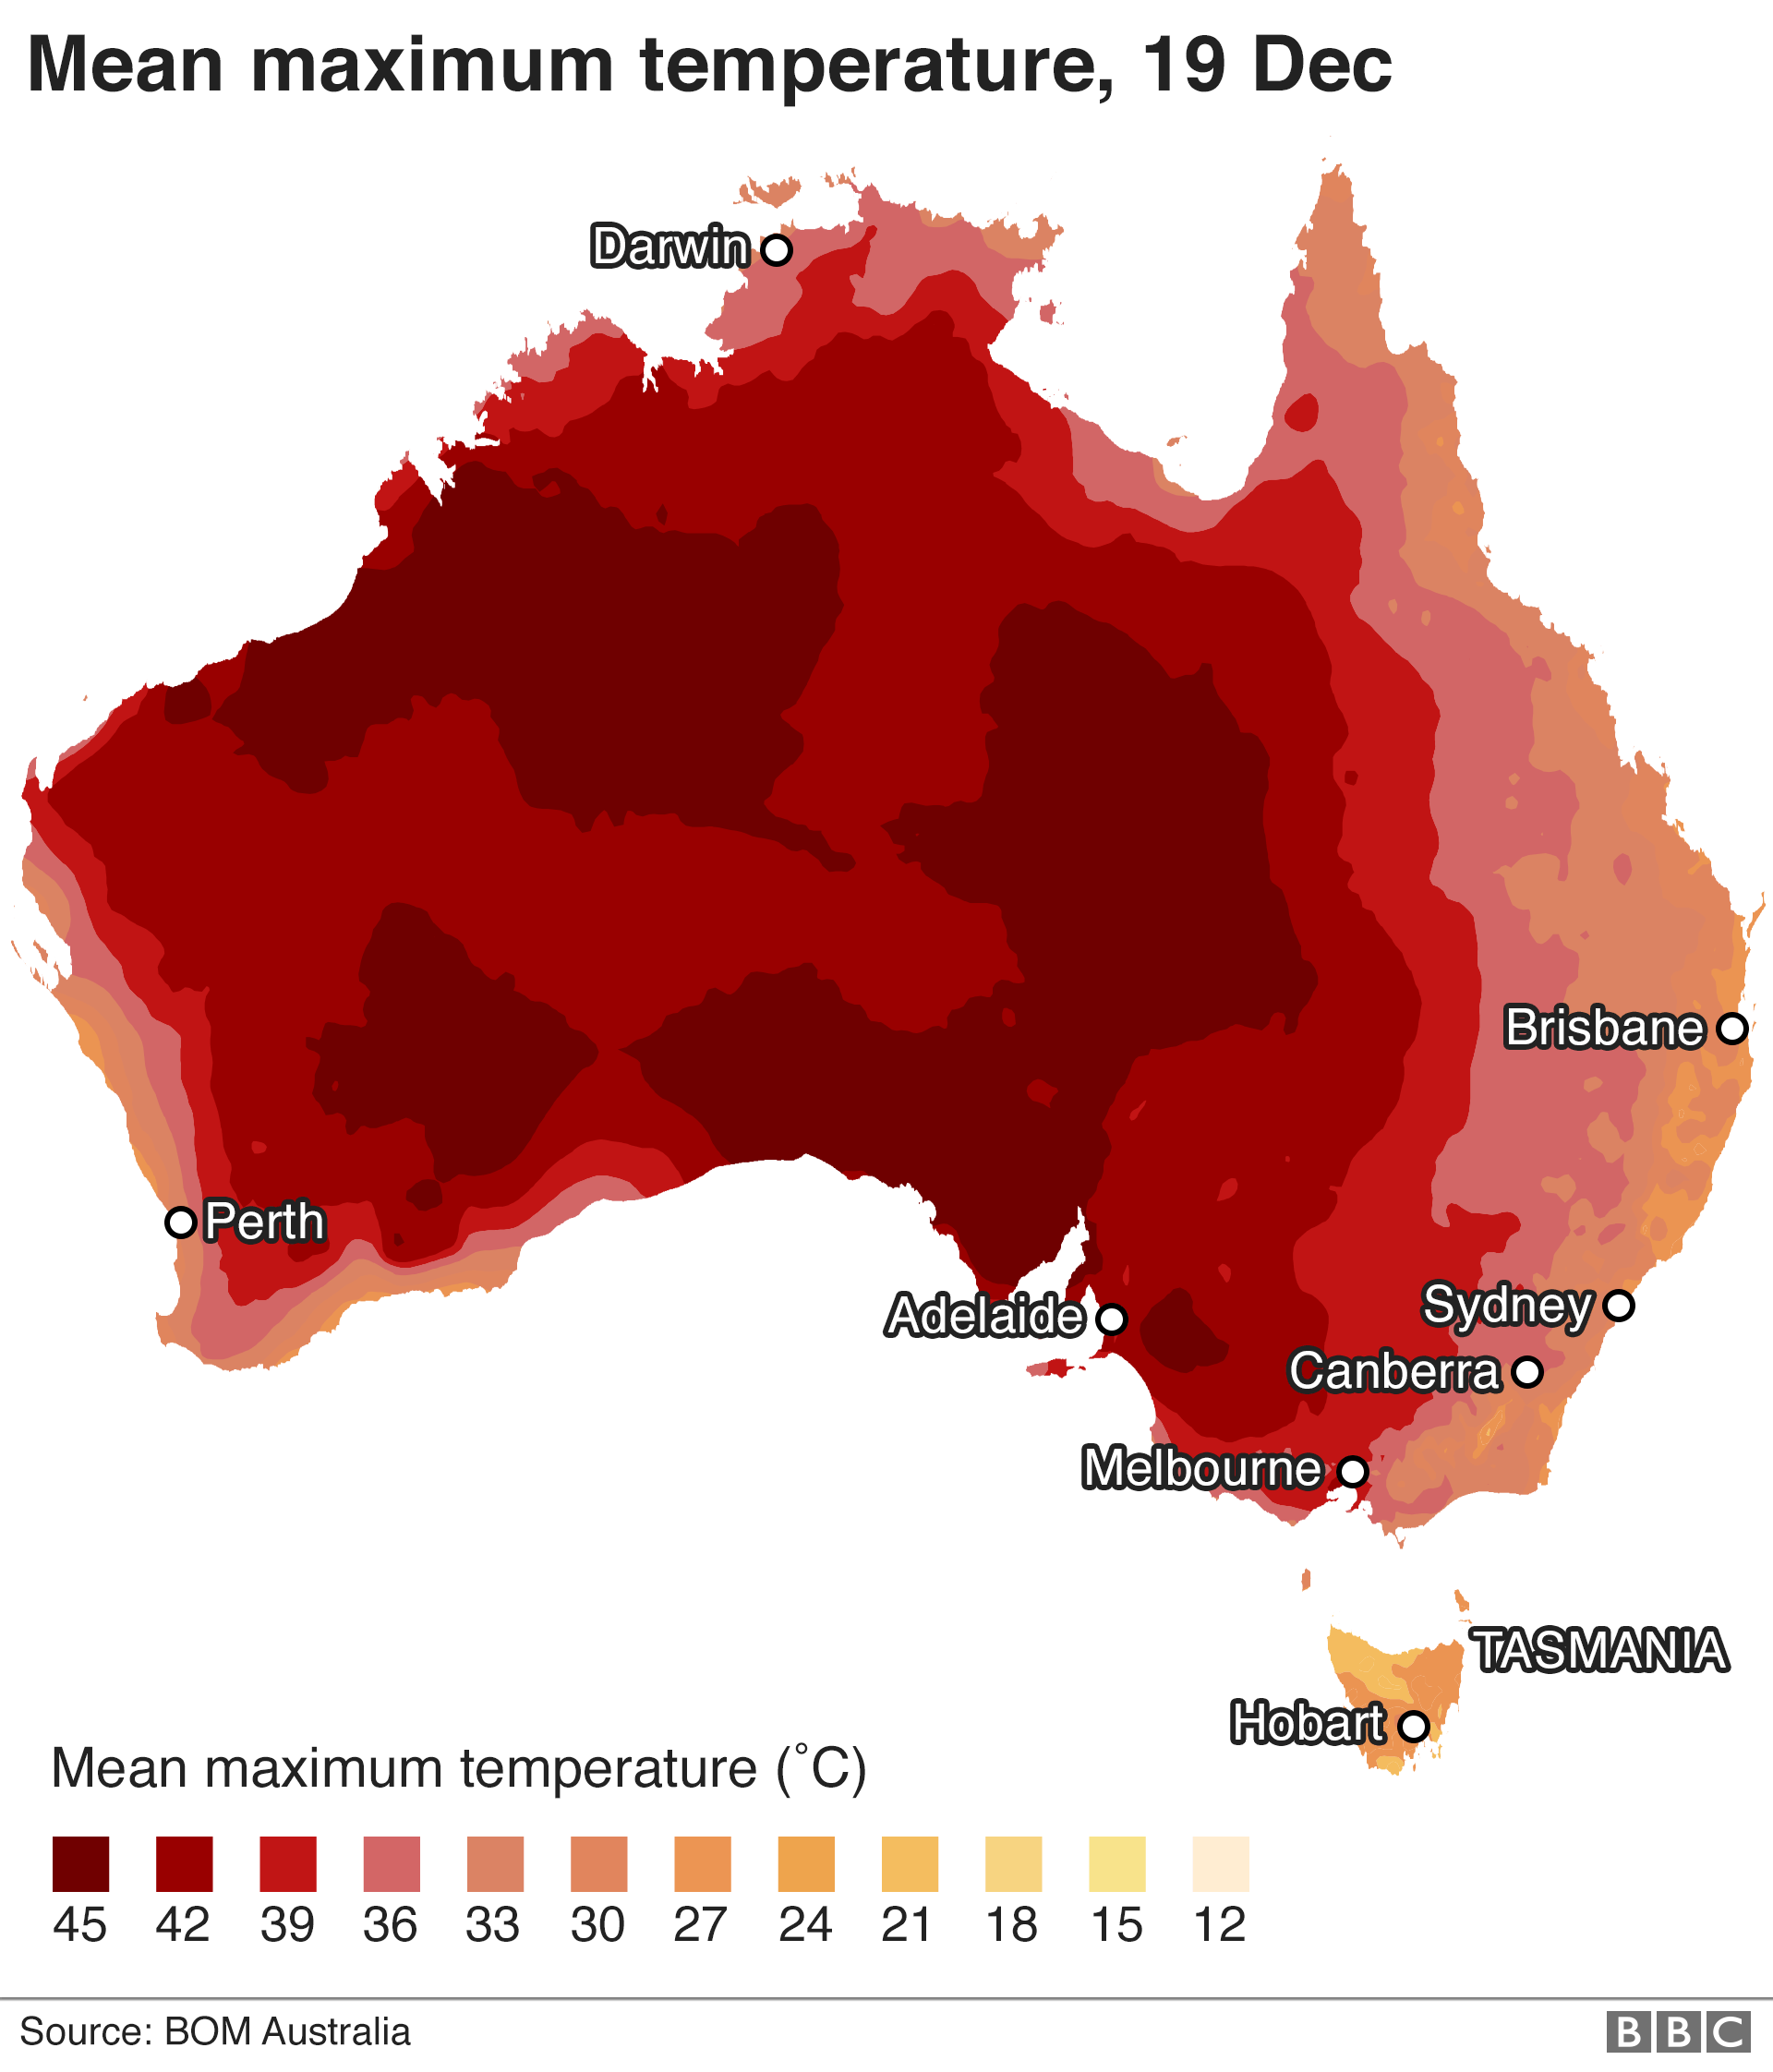 Maximum temperatures, 19 December